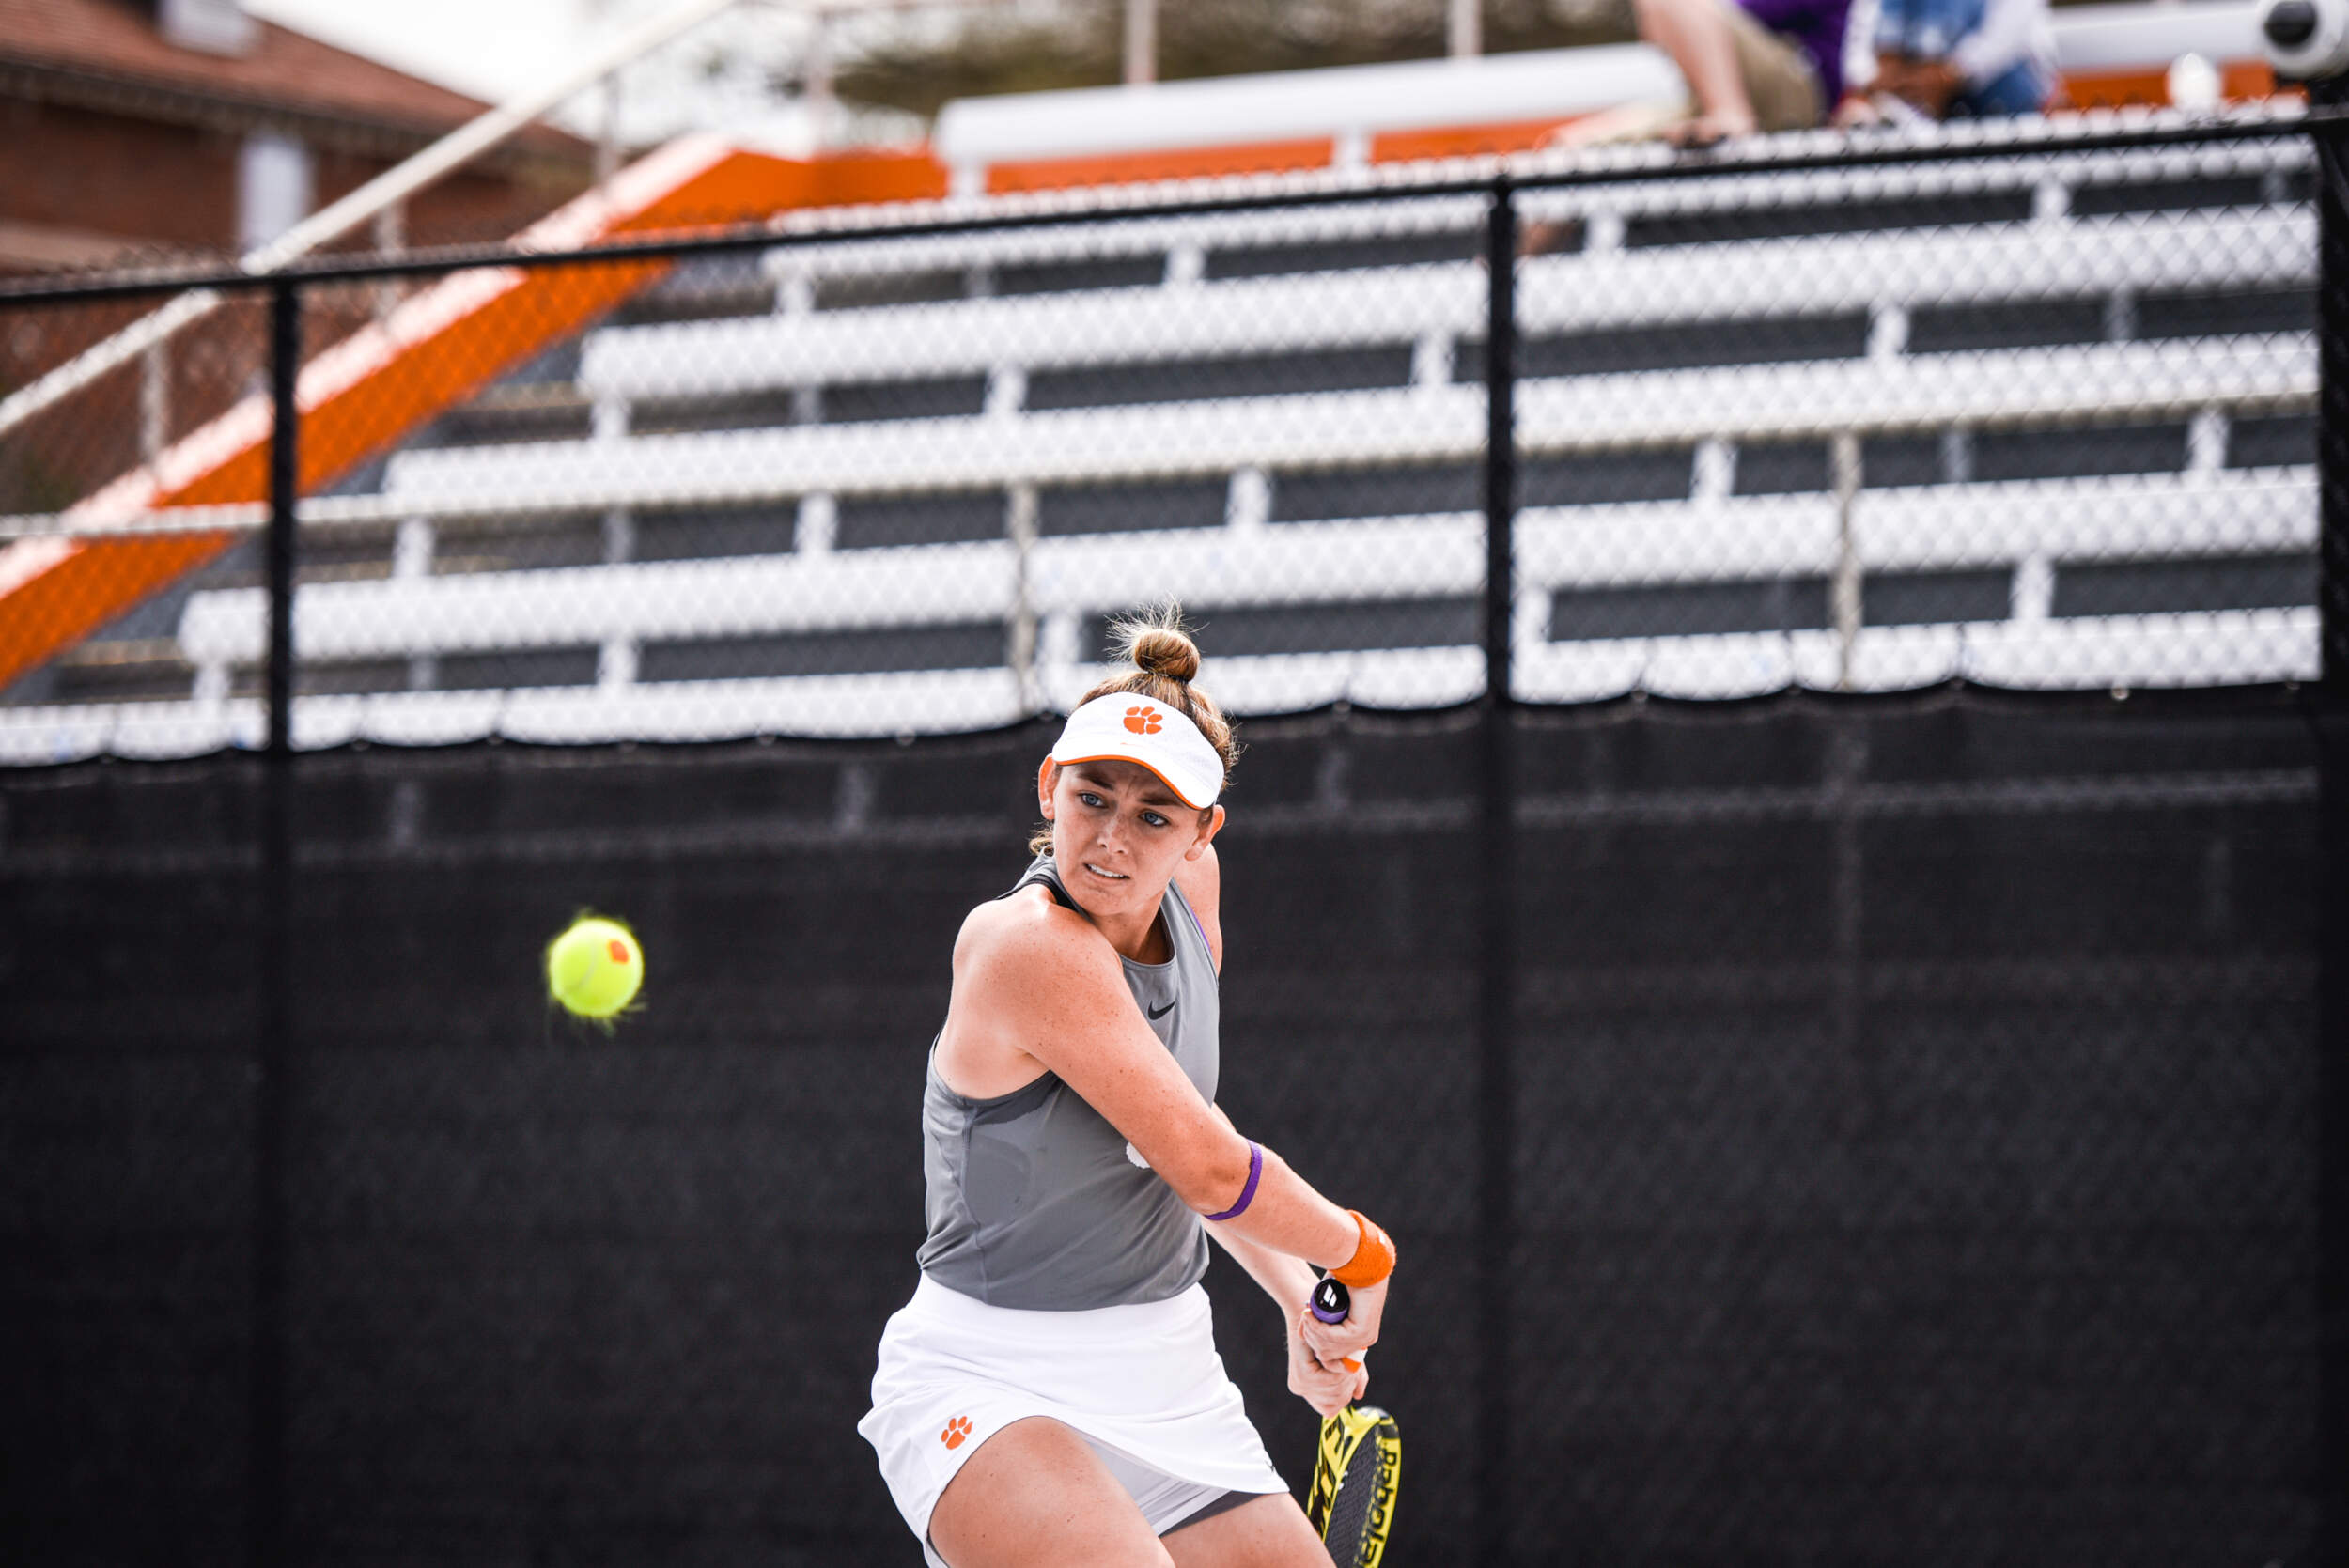 Two Tigers Win Flight at Debbie Southern Fall Classic